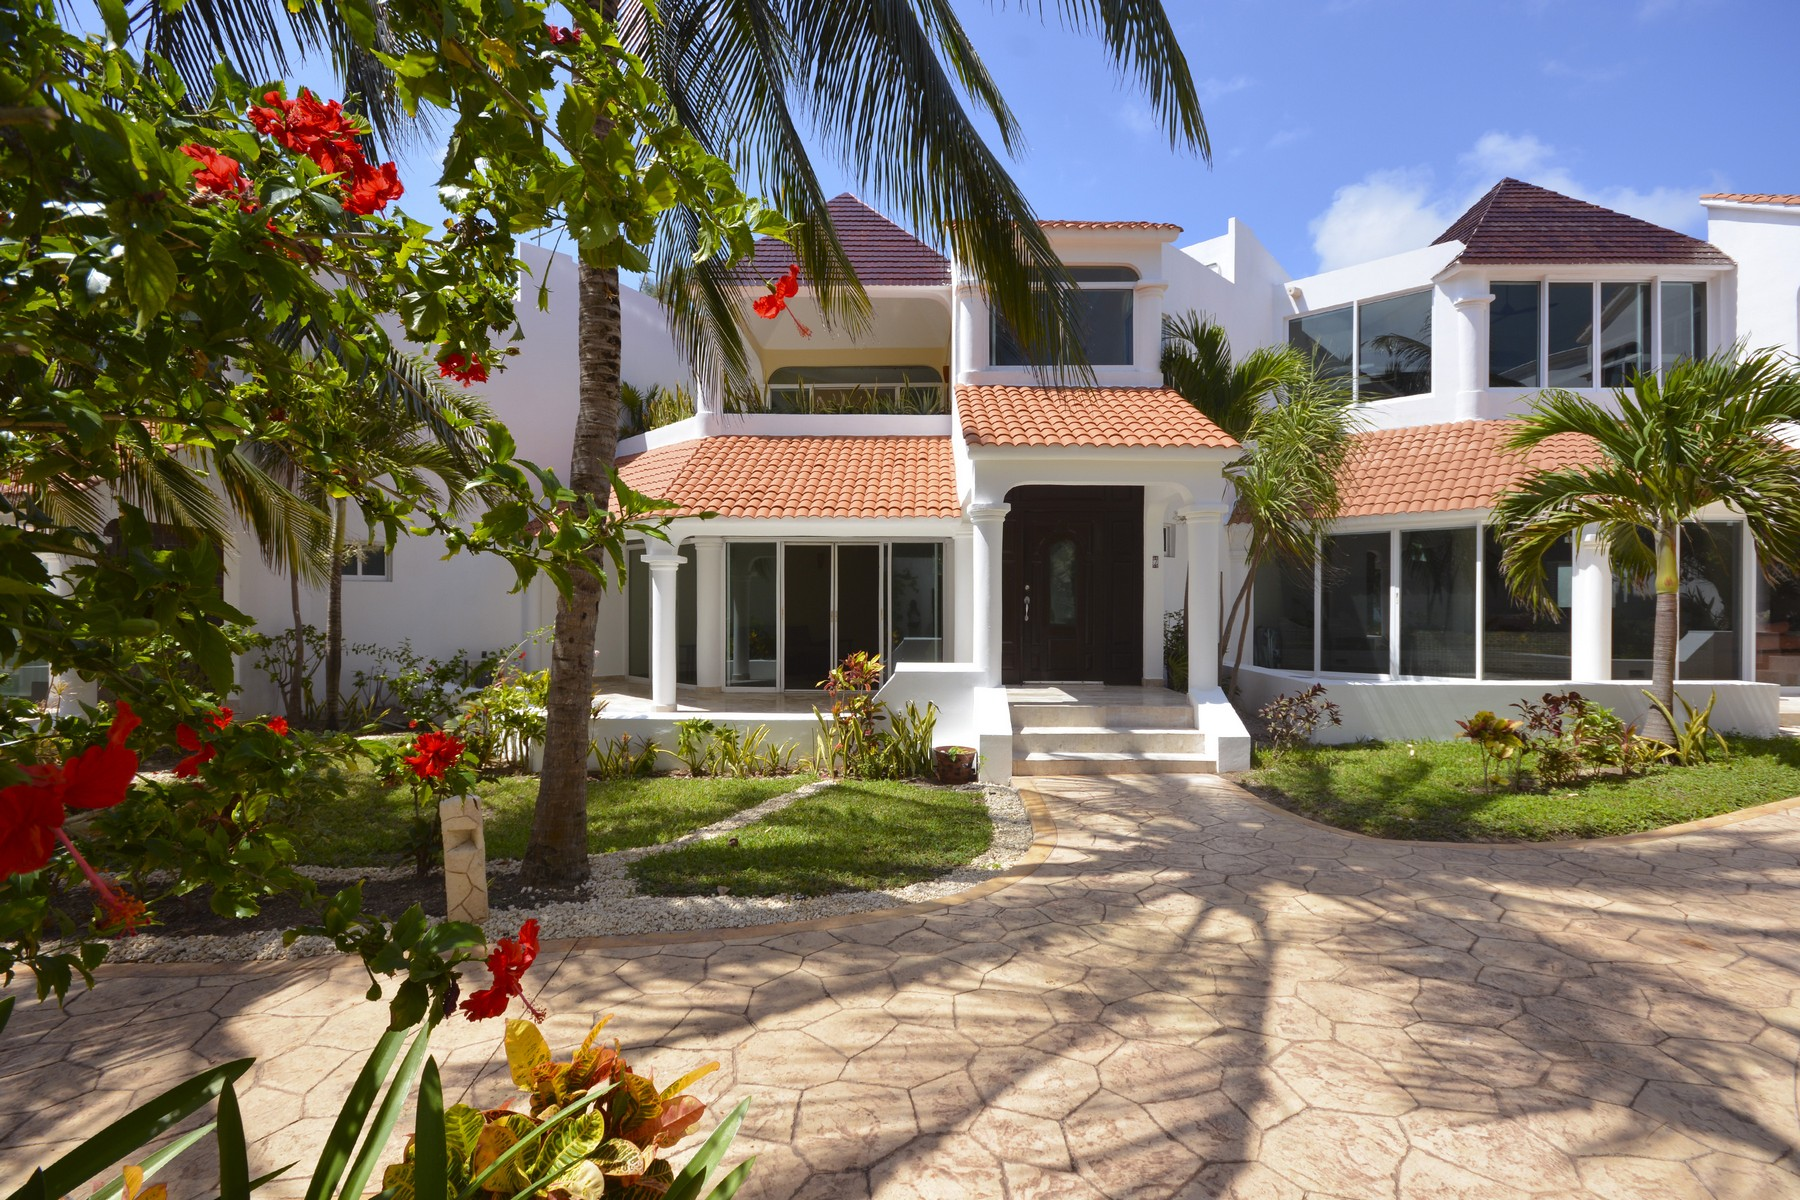 Additional photo for property listing at SOL VILLAGE Villa Del Sol SM-11 MZ-05 L-1 Puerto Morelos, Quintana Roo 77580 Mexico